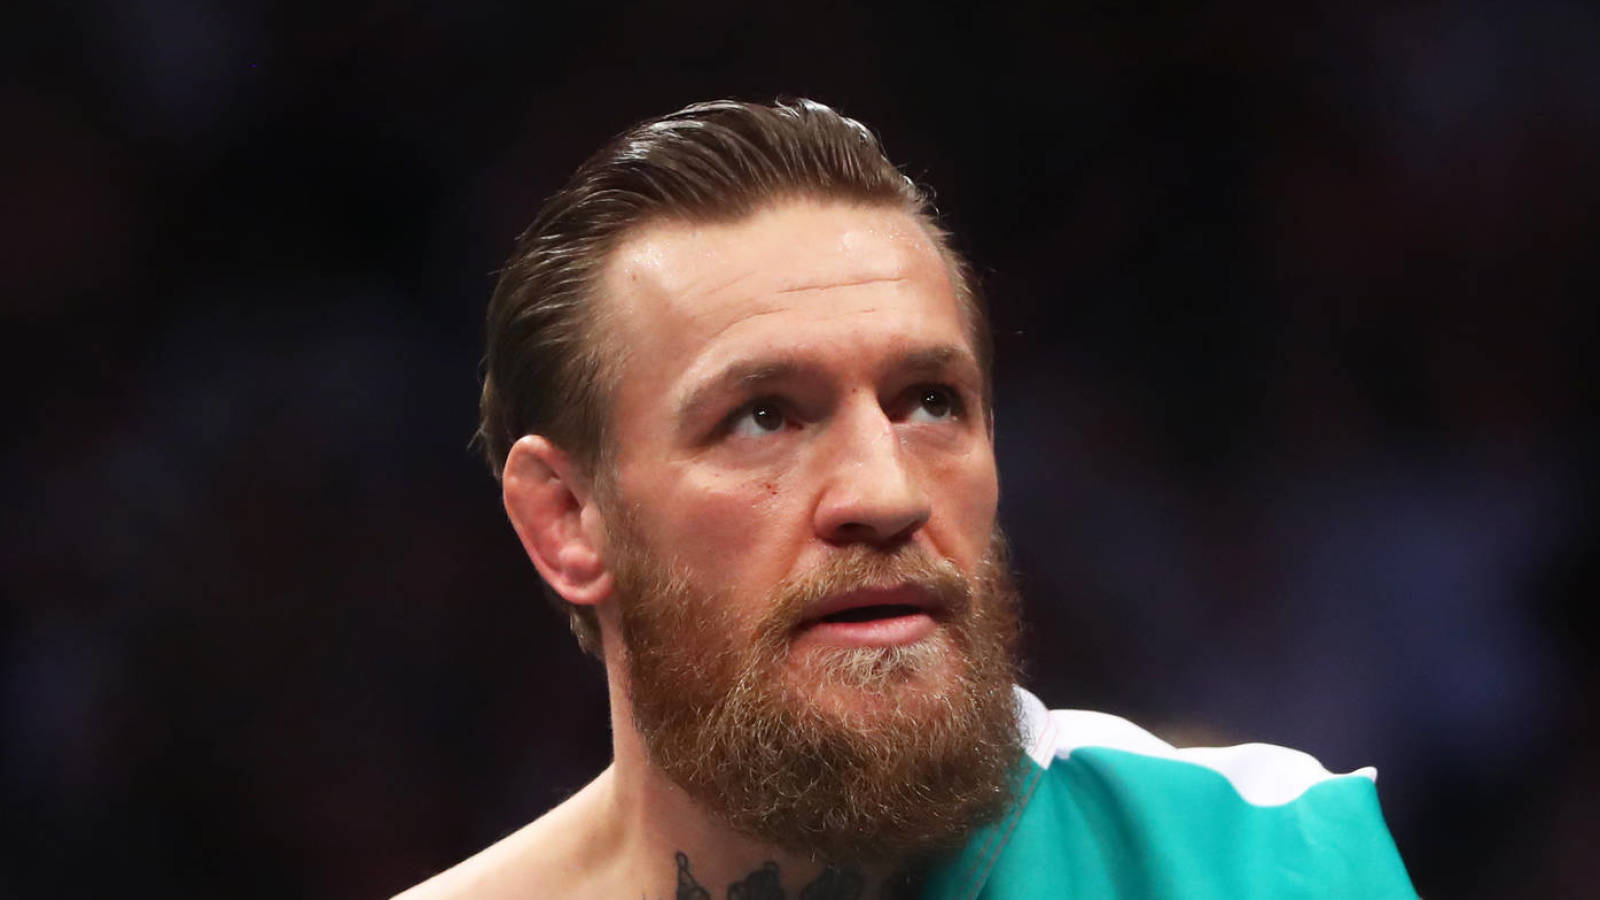 McGregor trying to lure Nurmagomedov out of retirement